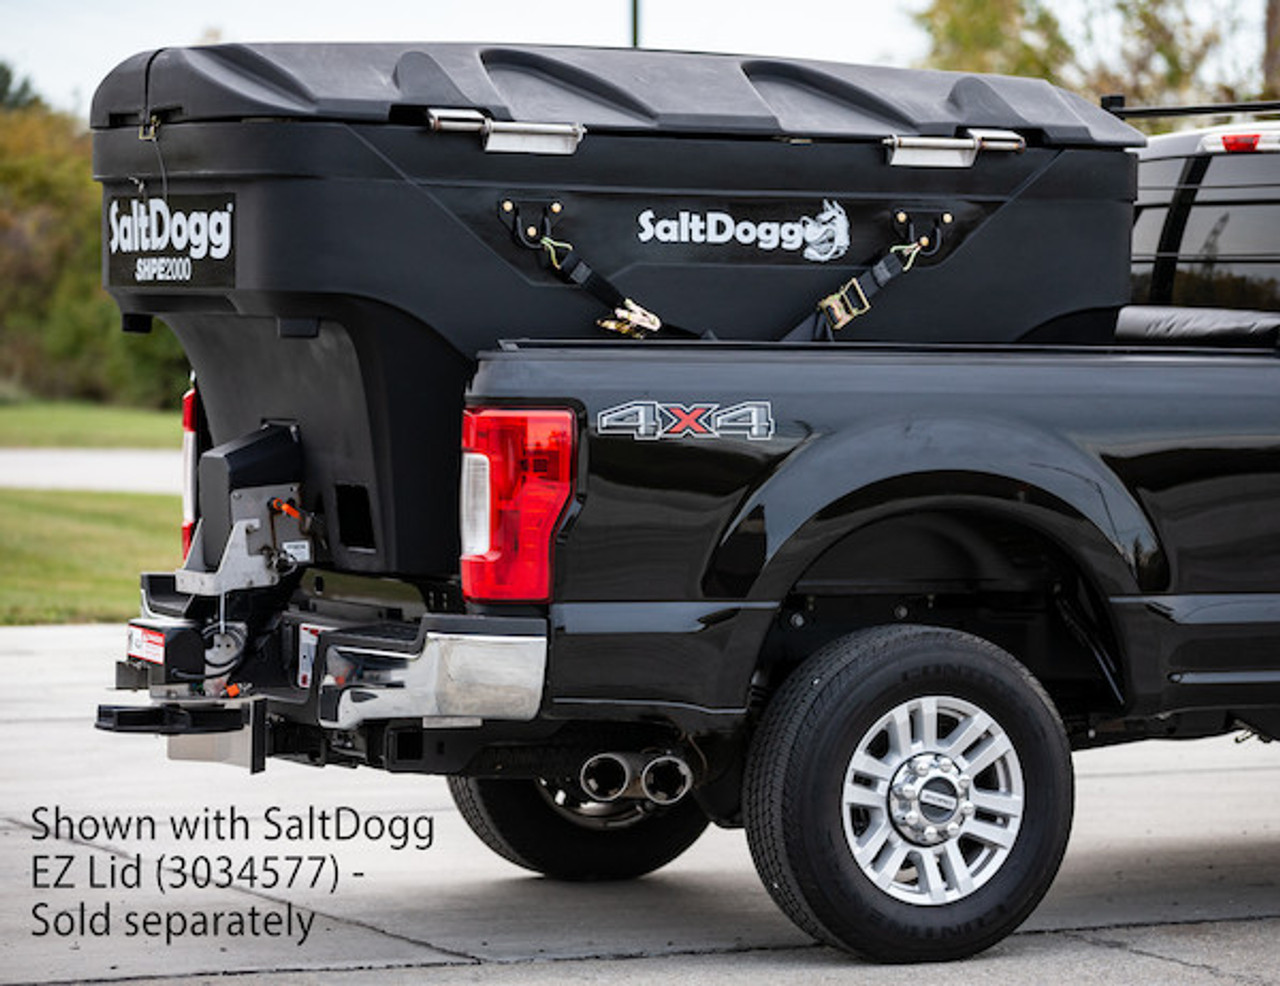 SHPE2000 BUYERS SaltDogg 2.0 Cubic Yard Electric Black Poly Hopper Spreader WITH LID 9 (LID SOLD SEPARATELY)